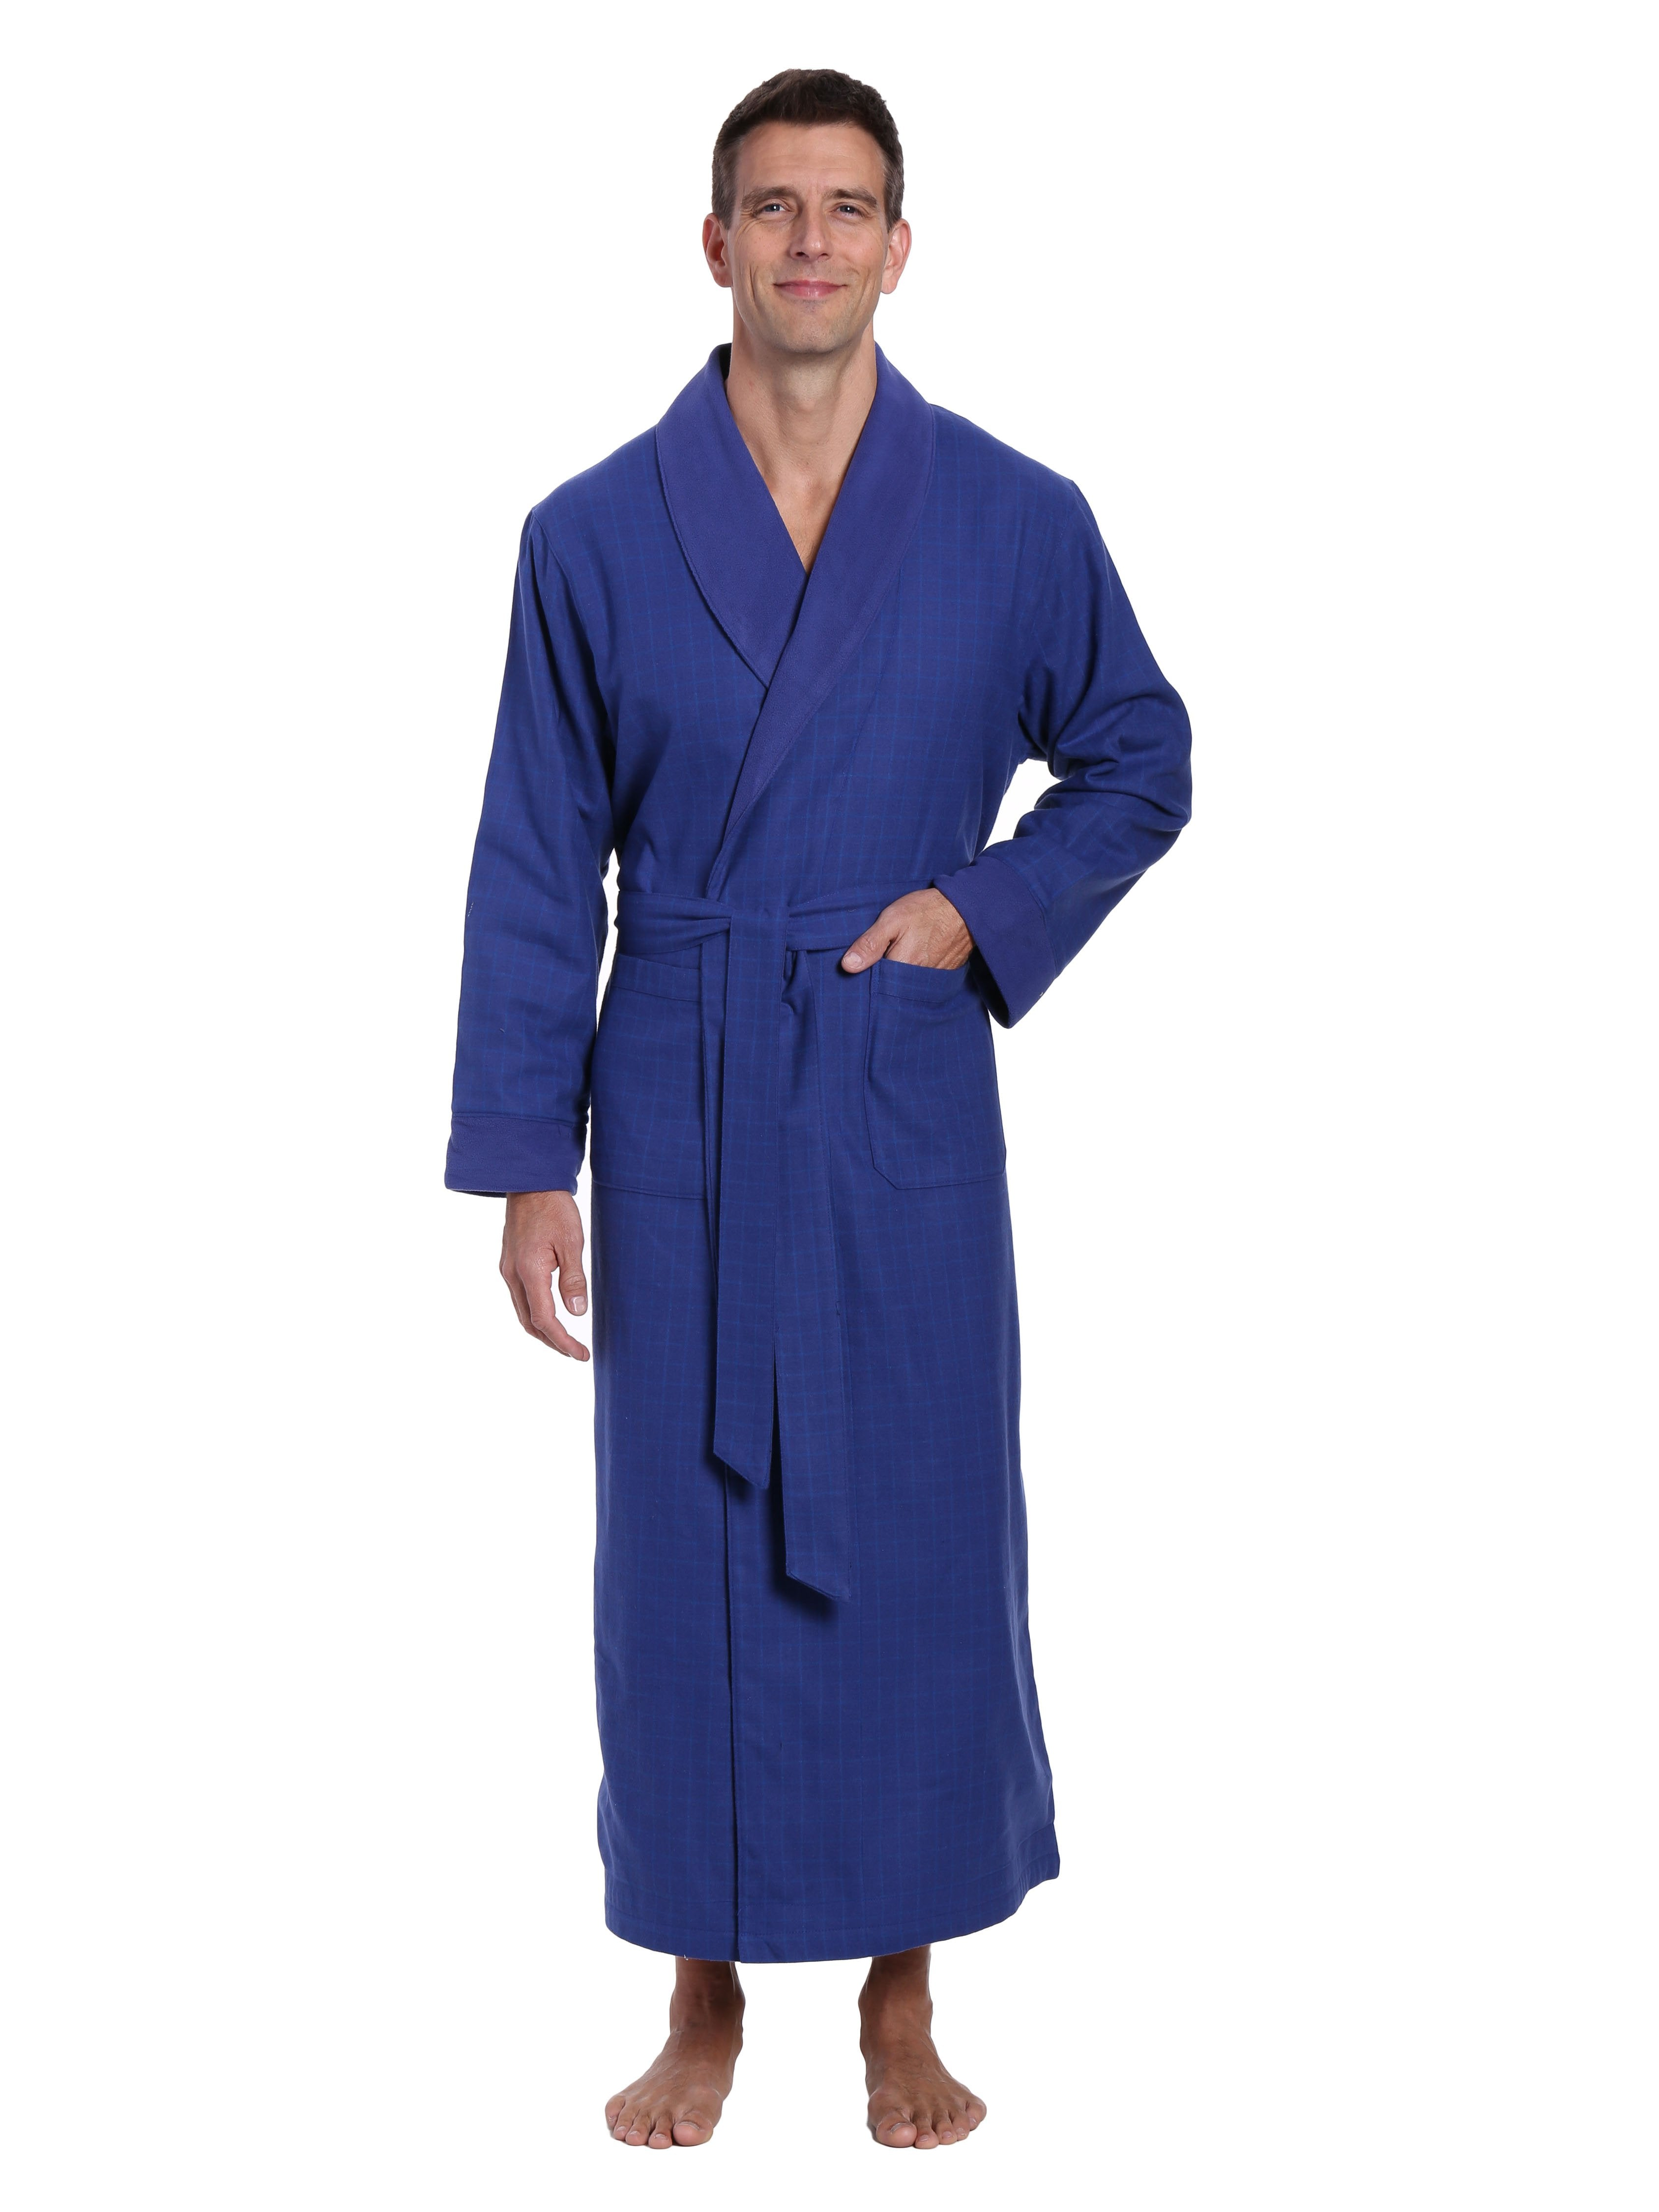 Men's Premium 100% Cotton Flannel Fleece Lined Robe - Windowpane Checks - Navy Blue